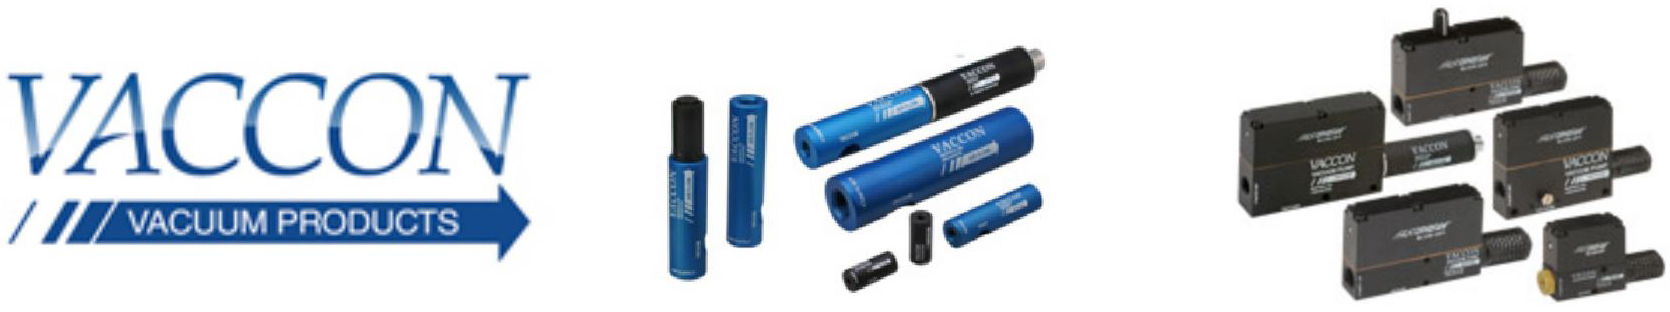 Vaccon Vacuum Products